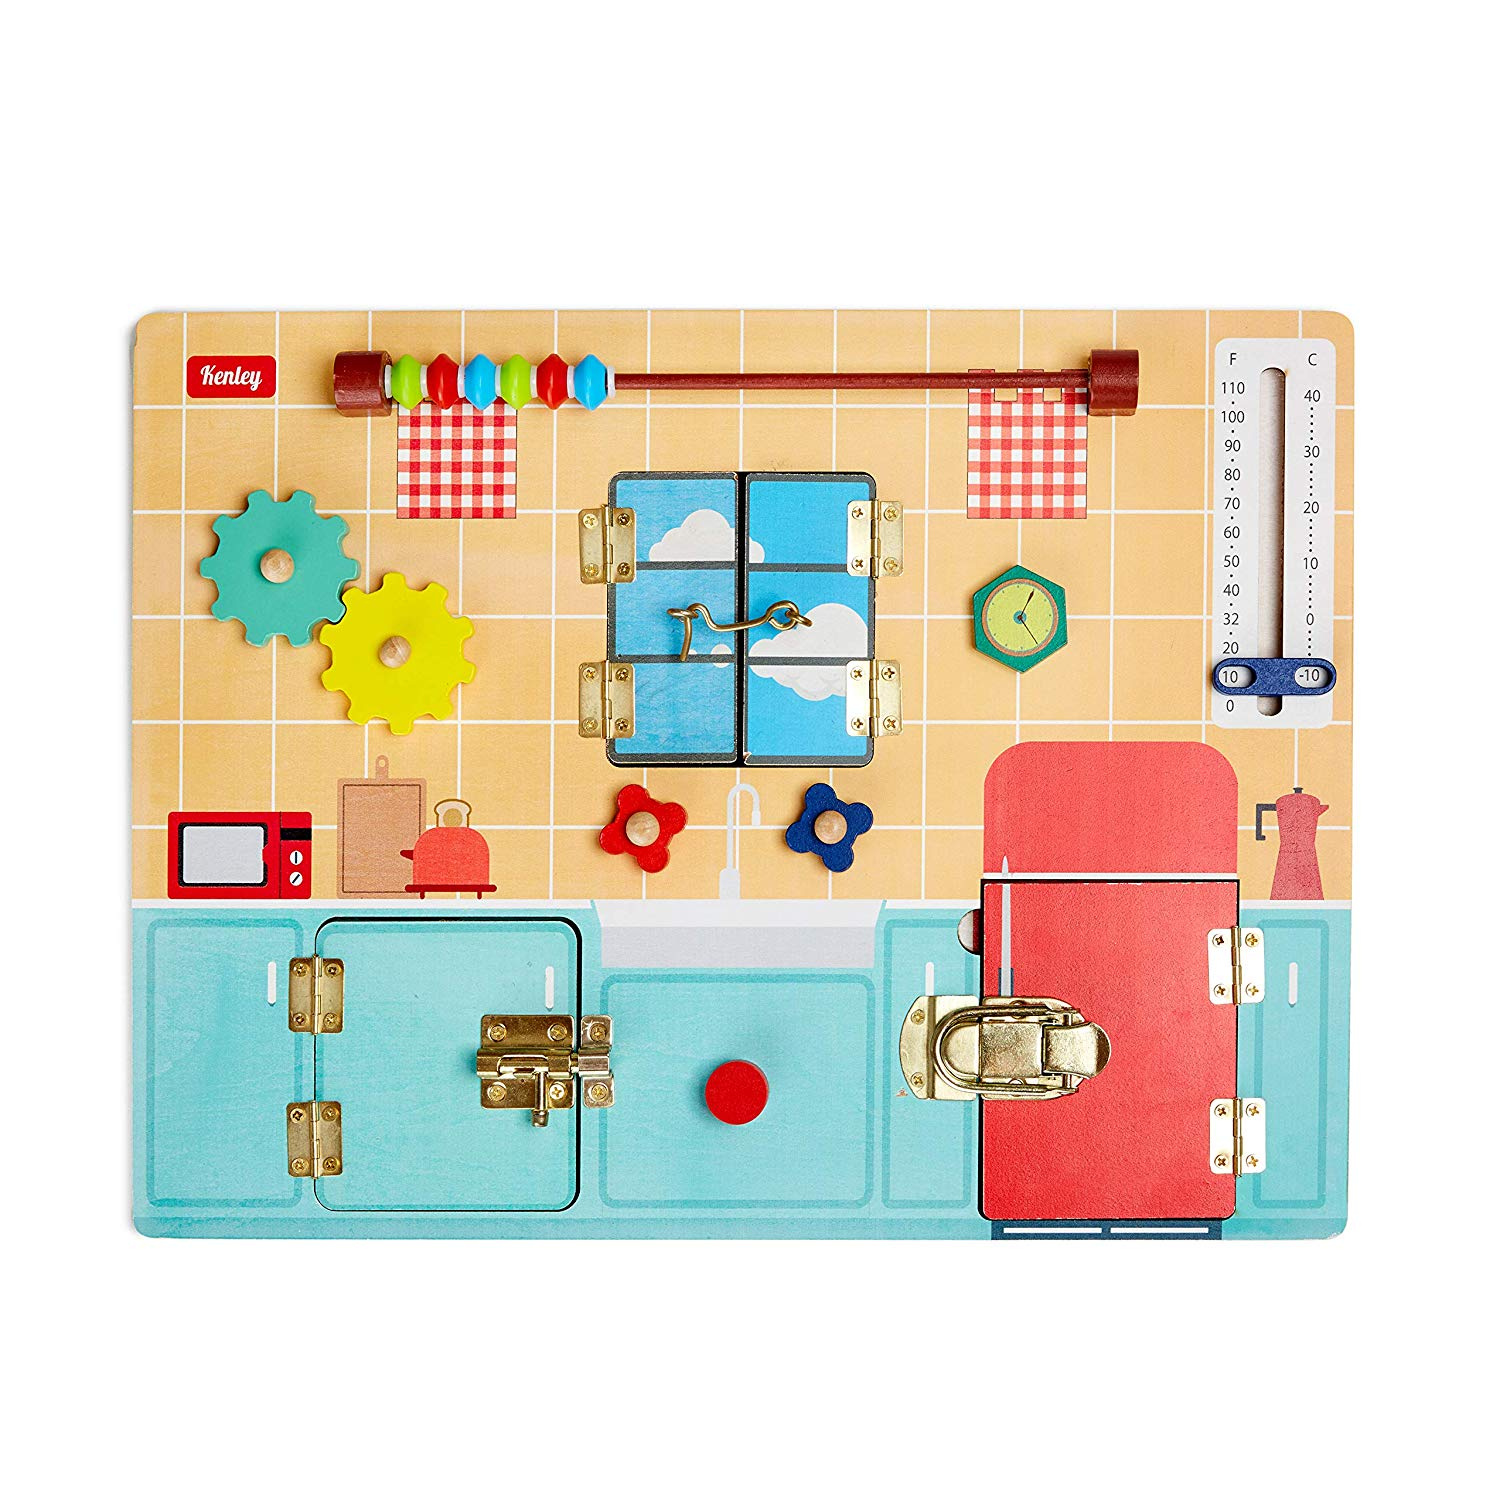 Busy Board For Toddlers Wooden Montessori Activity Board For Fine Motor Skills Educational Learning Toy With Latches Sensory Activities For 1 2